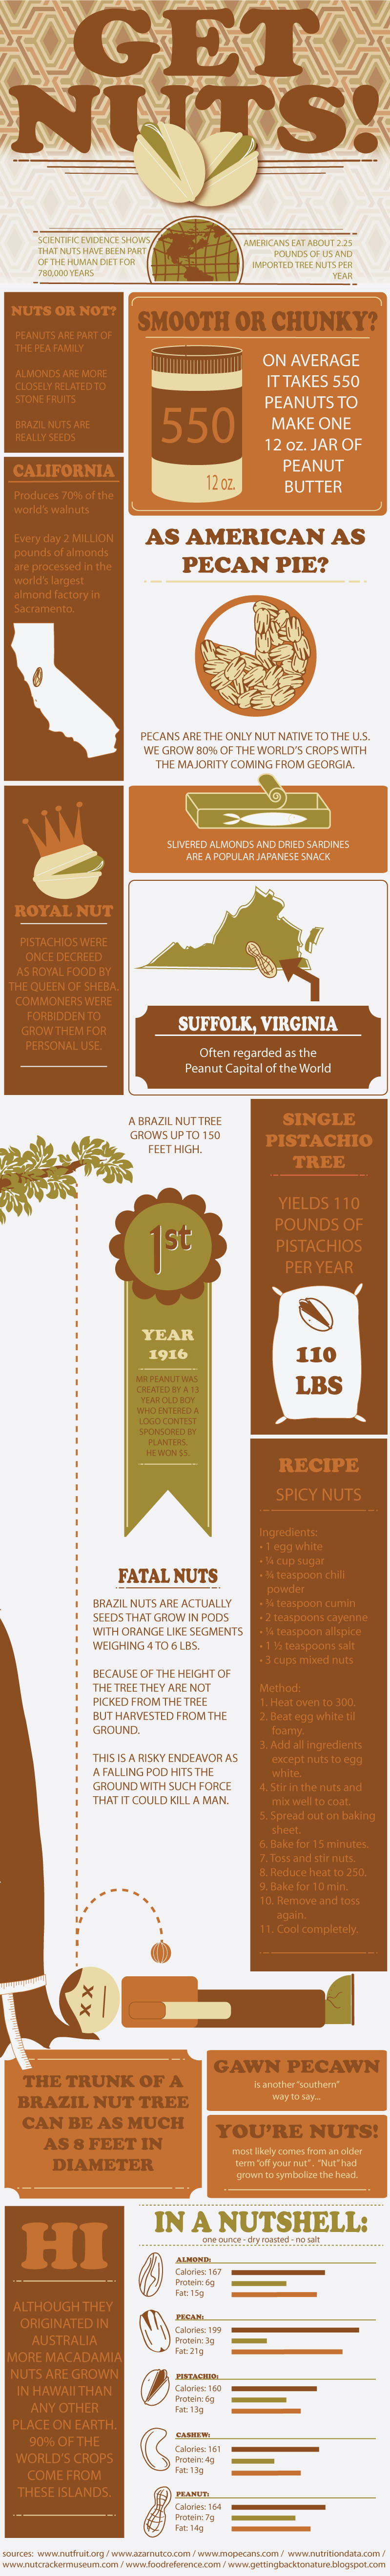 Benefits of Nuts infographic